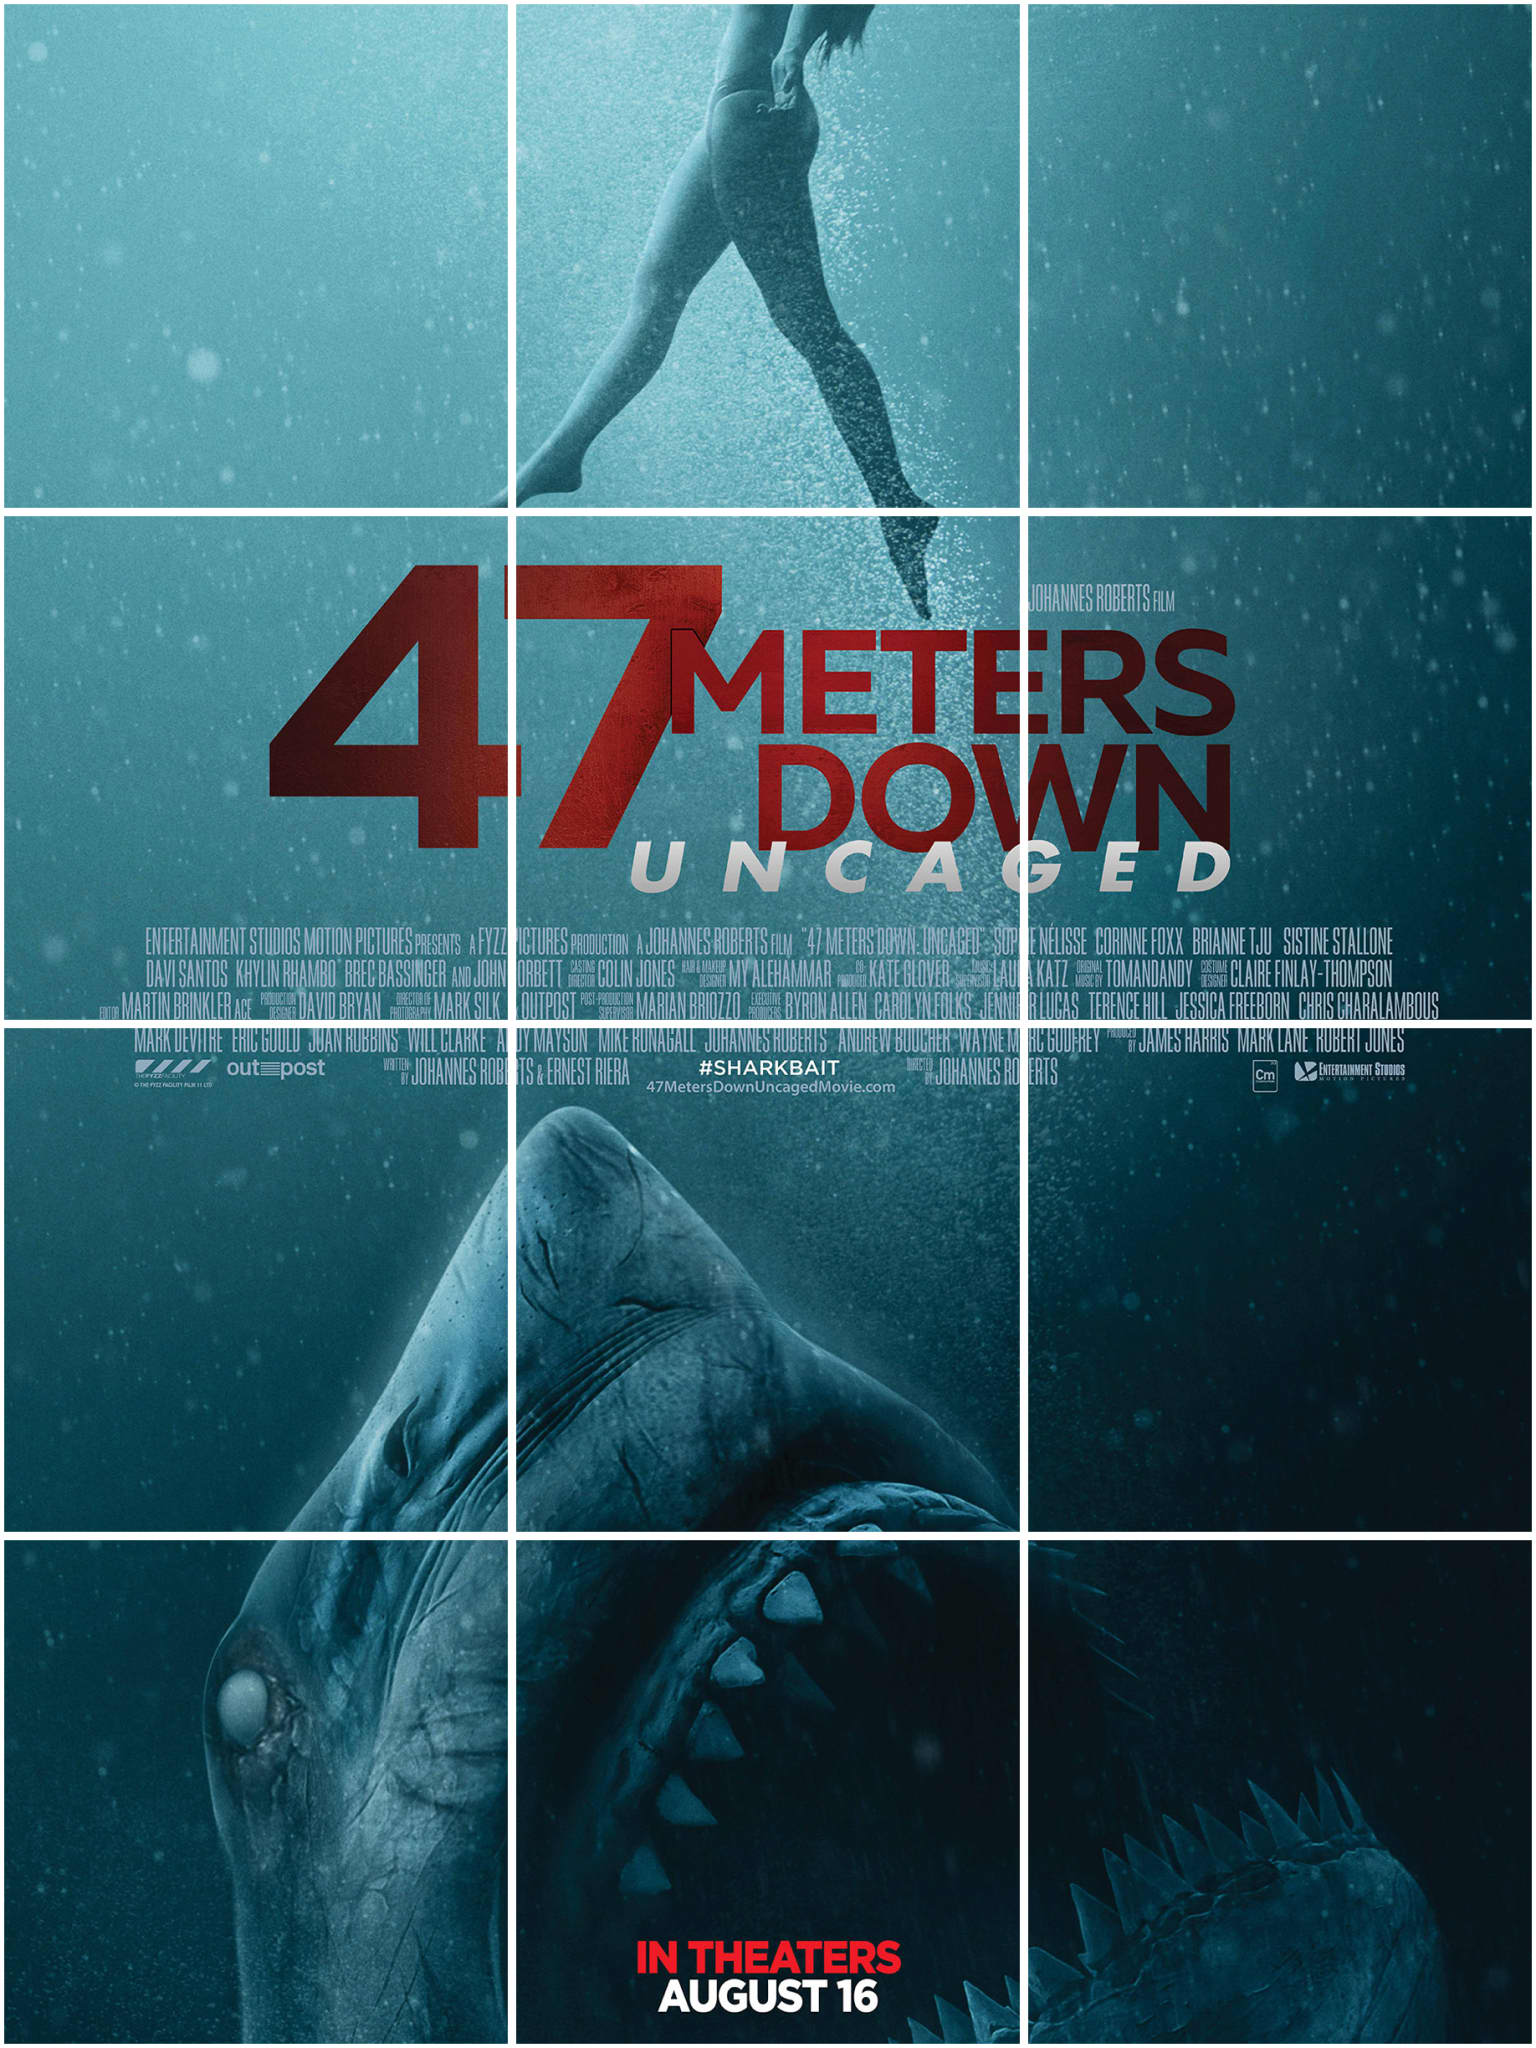 47 Meters Down: Uncaged - Social Media Campaign